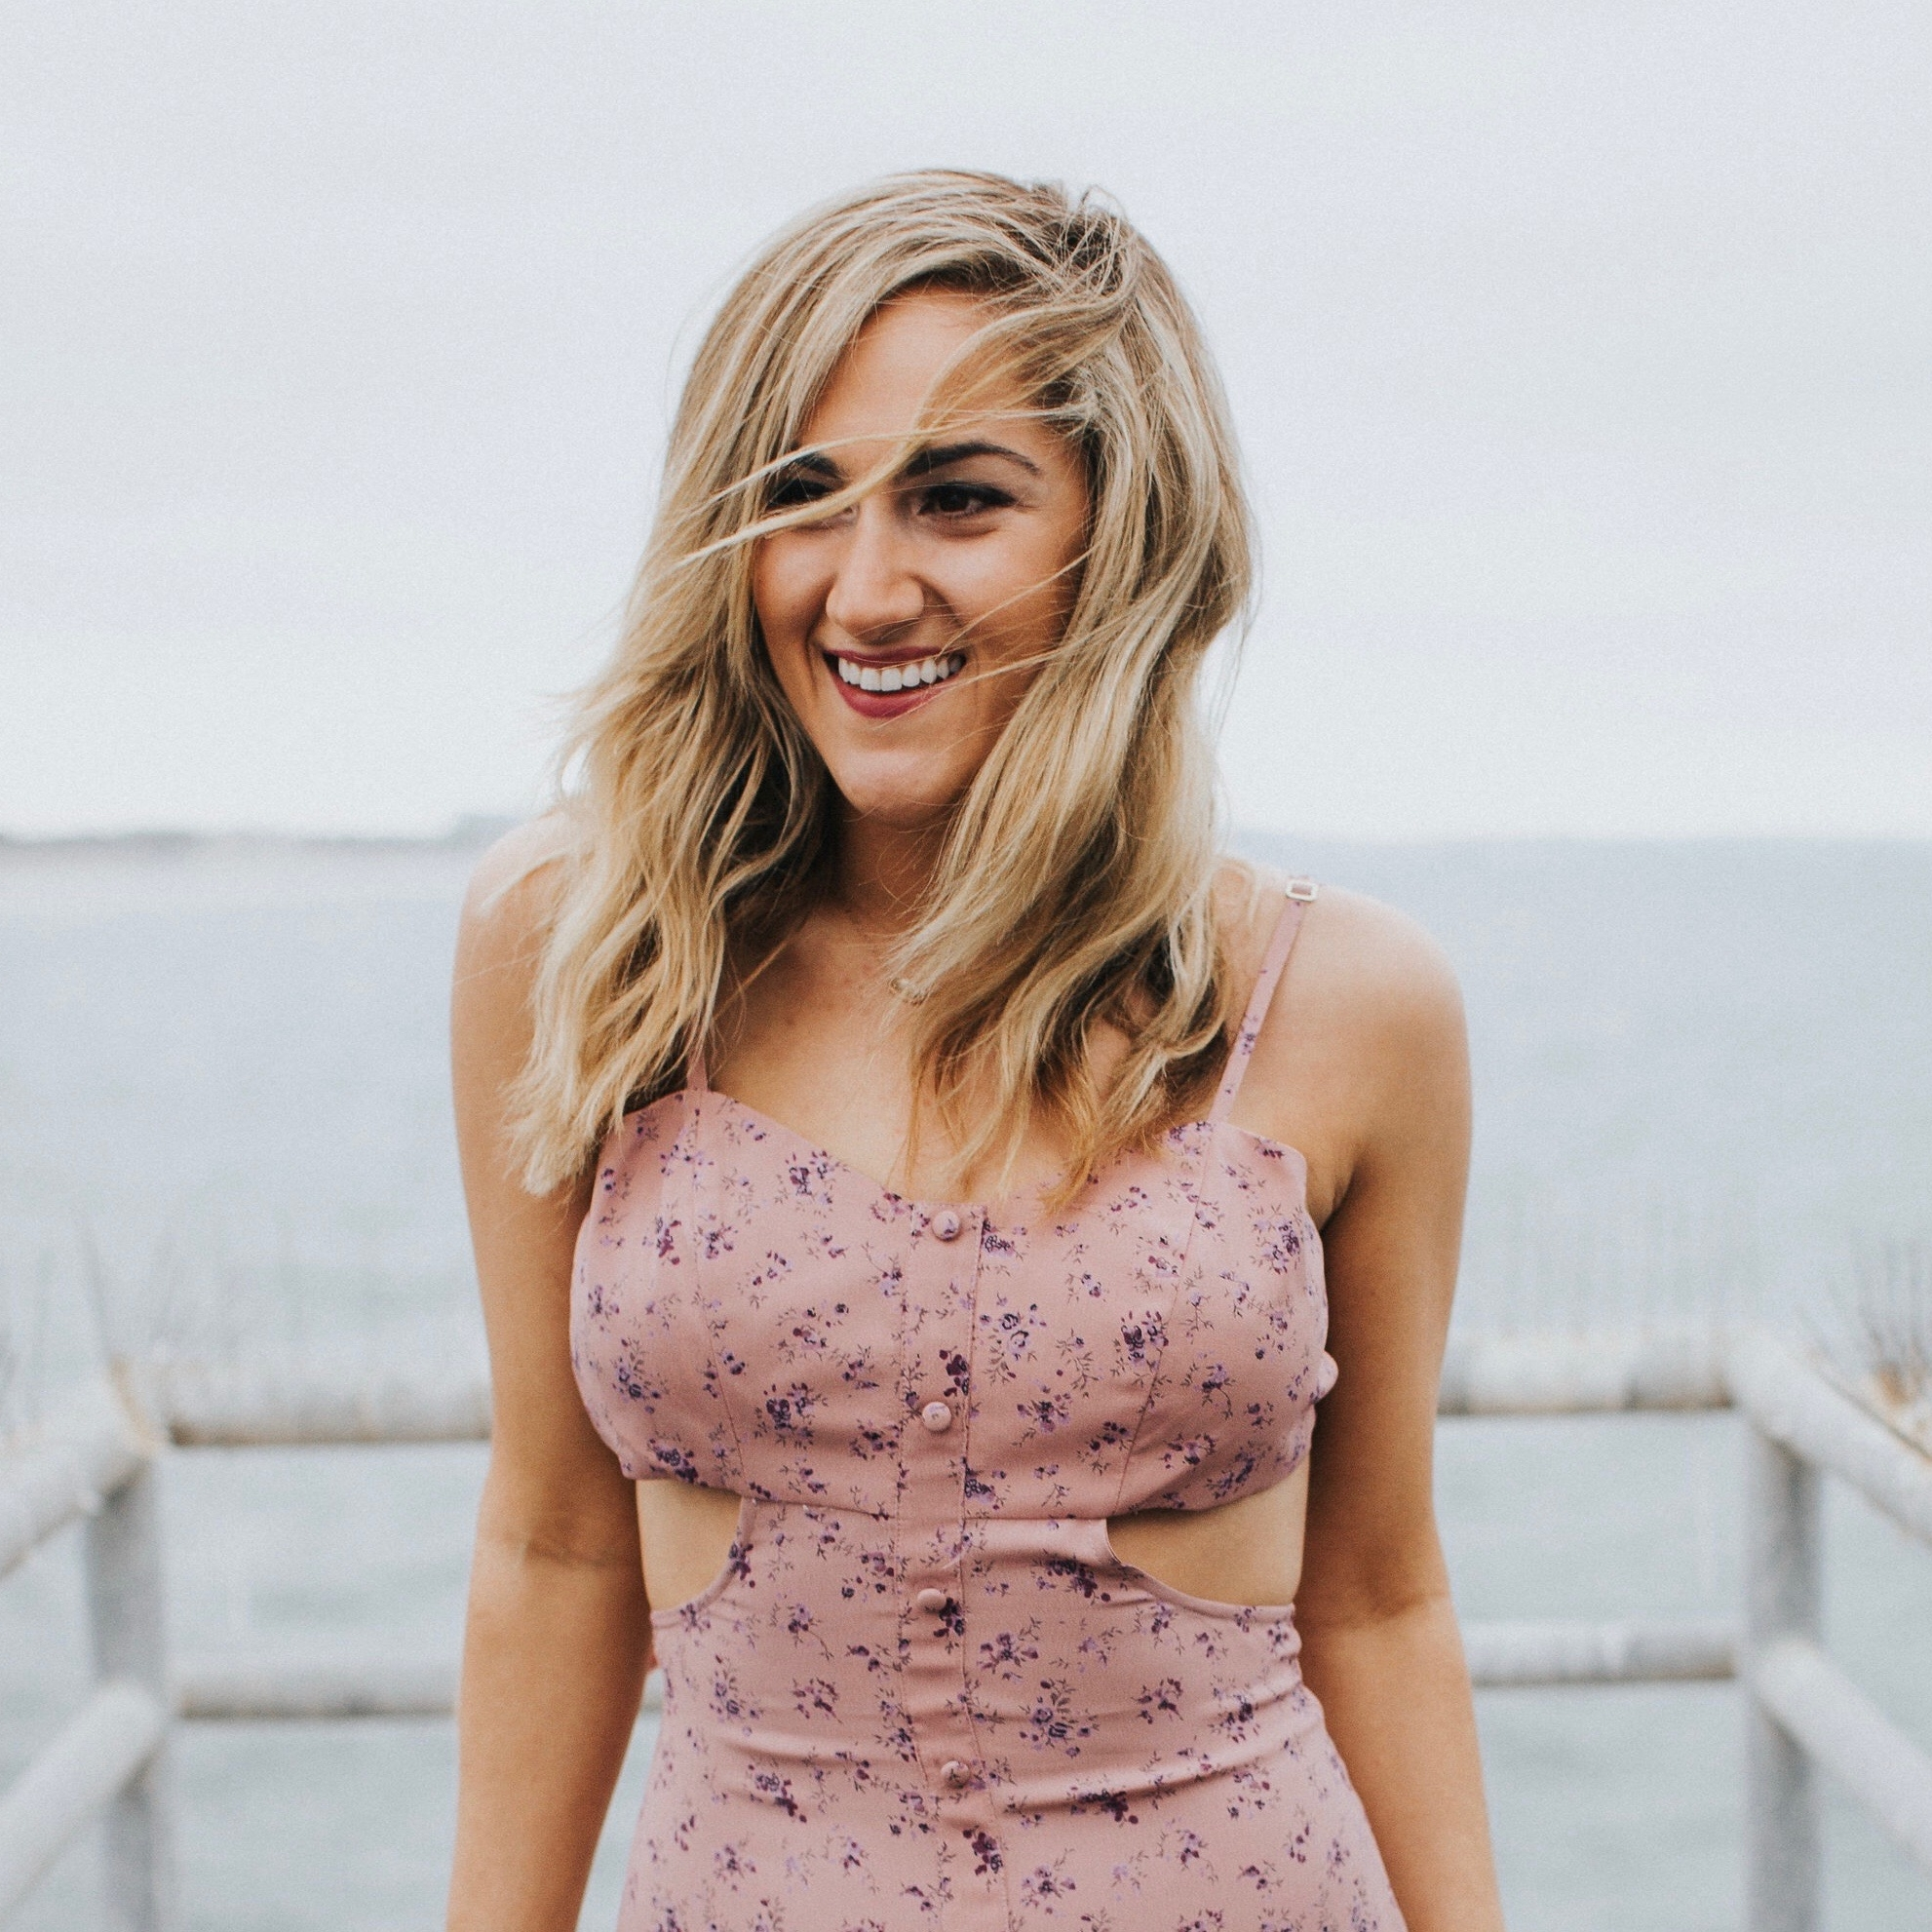 Paige More - Paige More is a California gal turned New Yorker. Paige moved to New York 4 years ago to chase her dream job, and landed it.Paige was formerly a Producer for national networks such as Good Morning America, and The Daily Mail TV.